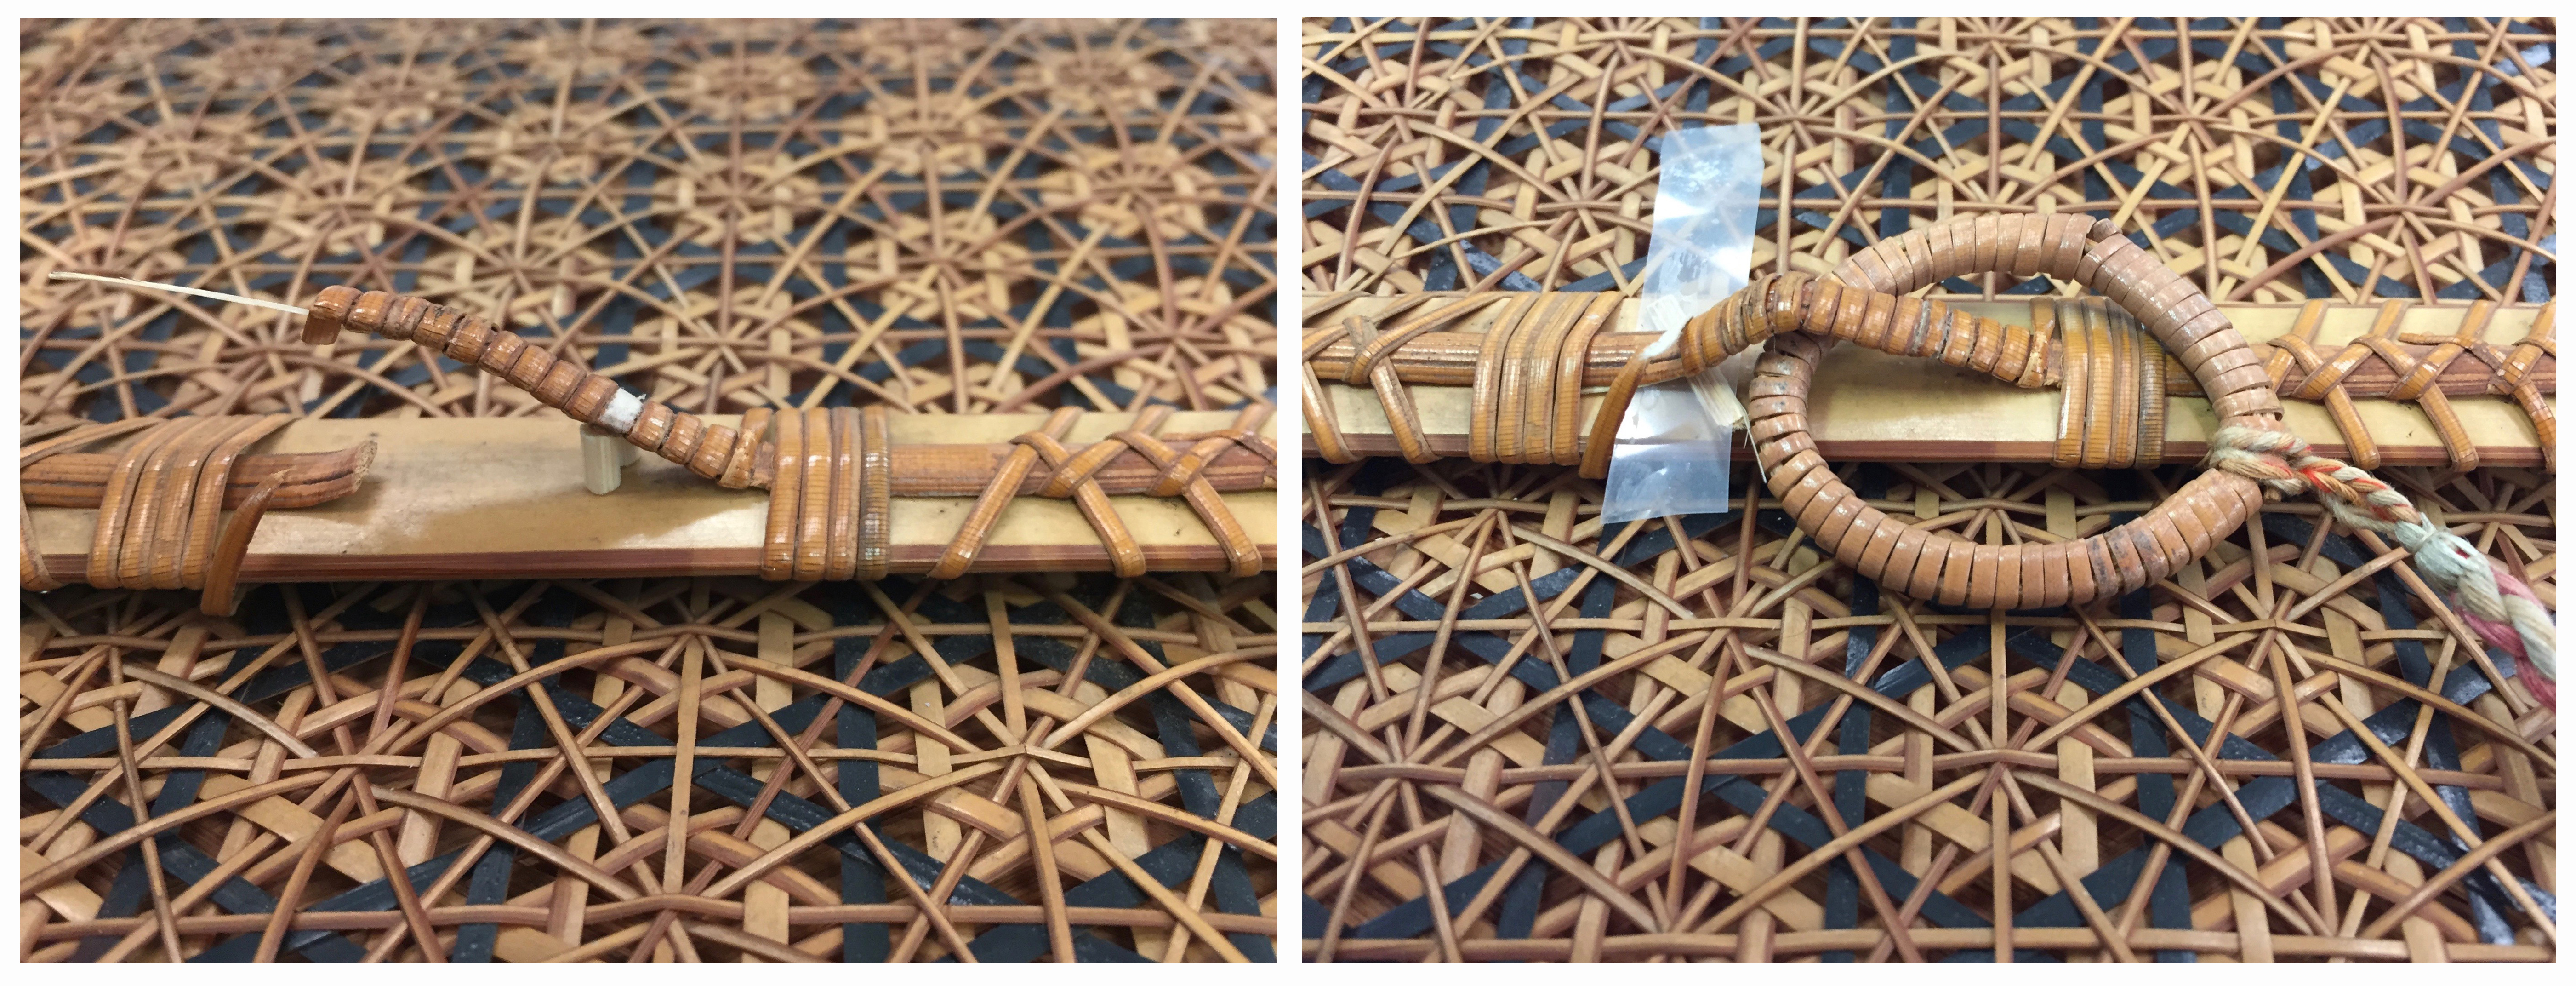 Left: Broken loop realigned using a splint, on background of woven hexagonal pattern. Right: Bamboo ring on end of silk tie attached through bamboo loop with strip of Japanese tissue visible to repair break in outer bamboo wrapping, on background of woven hexagonal pattern.